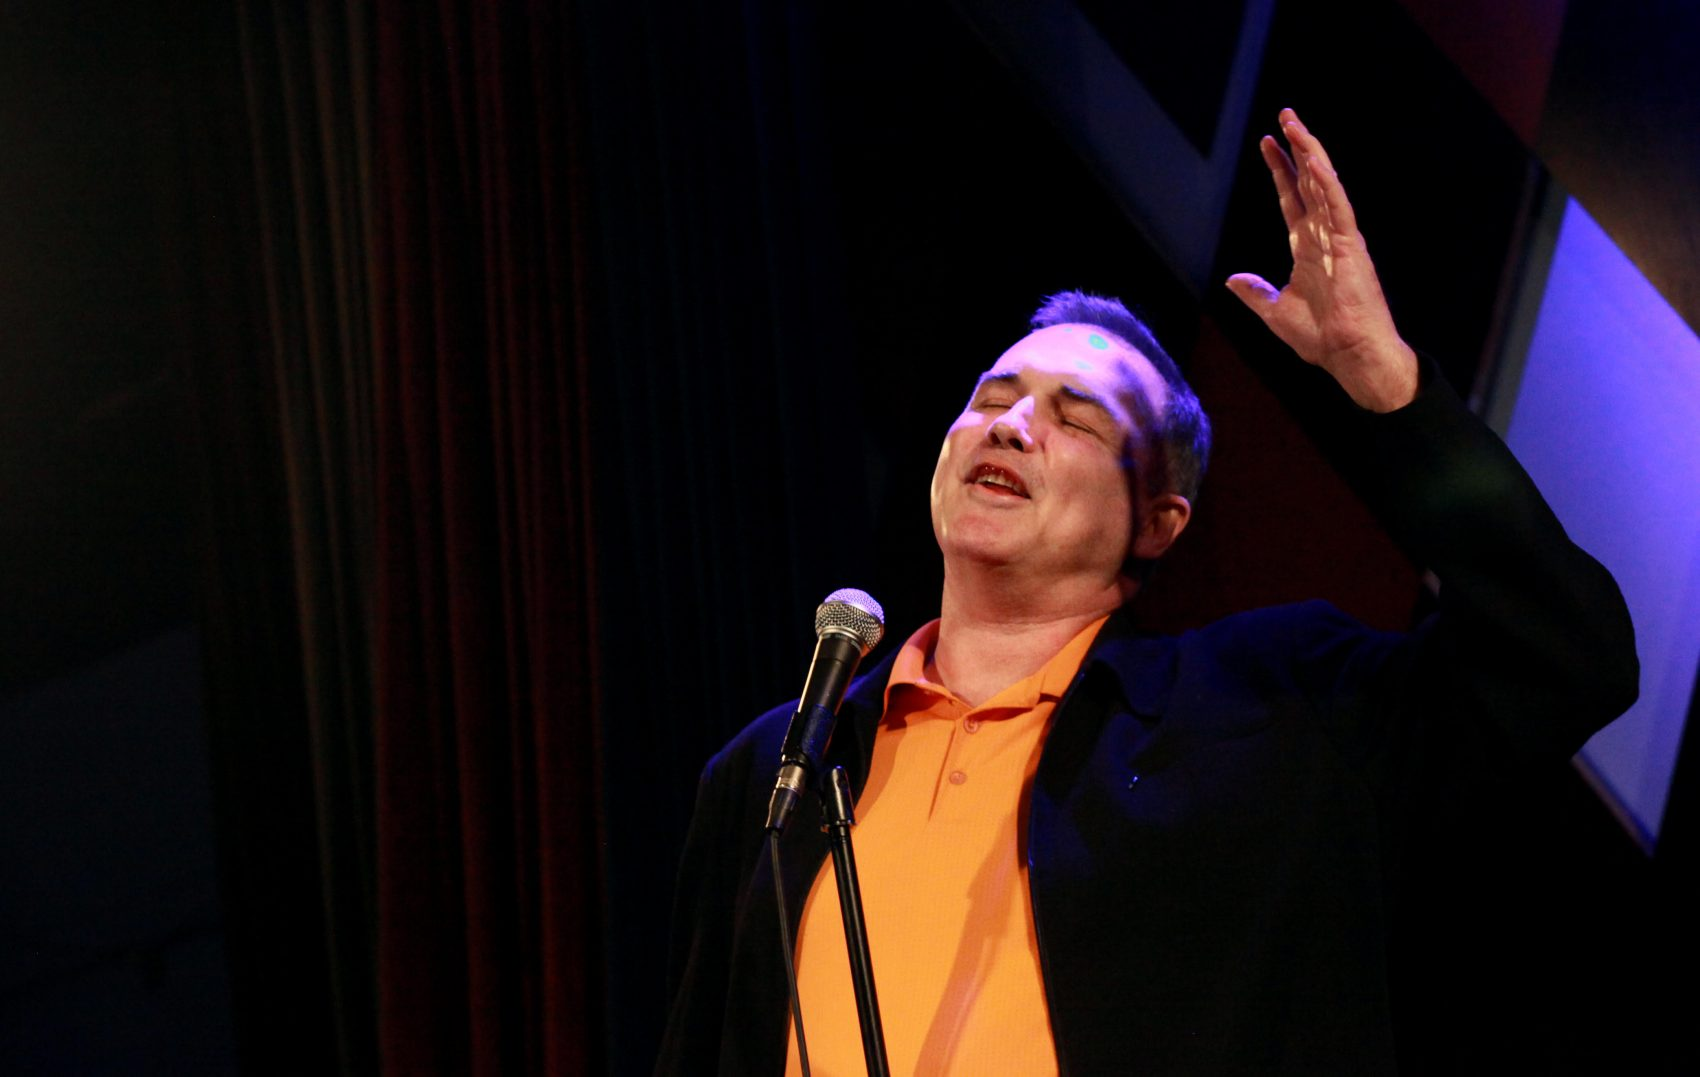 Comedian Norm MacDonald performs on stage at Carolines on Broadway in Manhattan, NY, on November 13, 2015. (Photo by Yana Paskova/For The Washington Post)